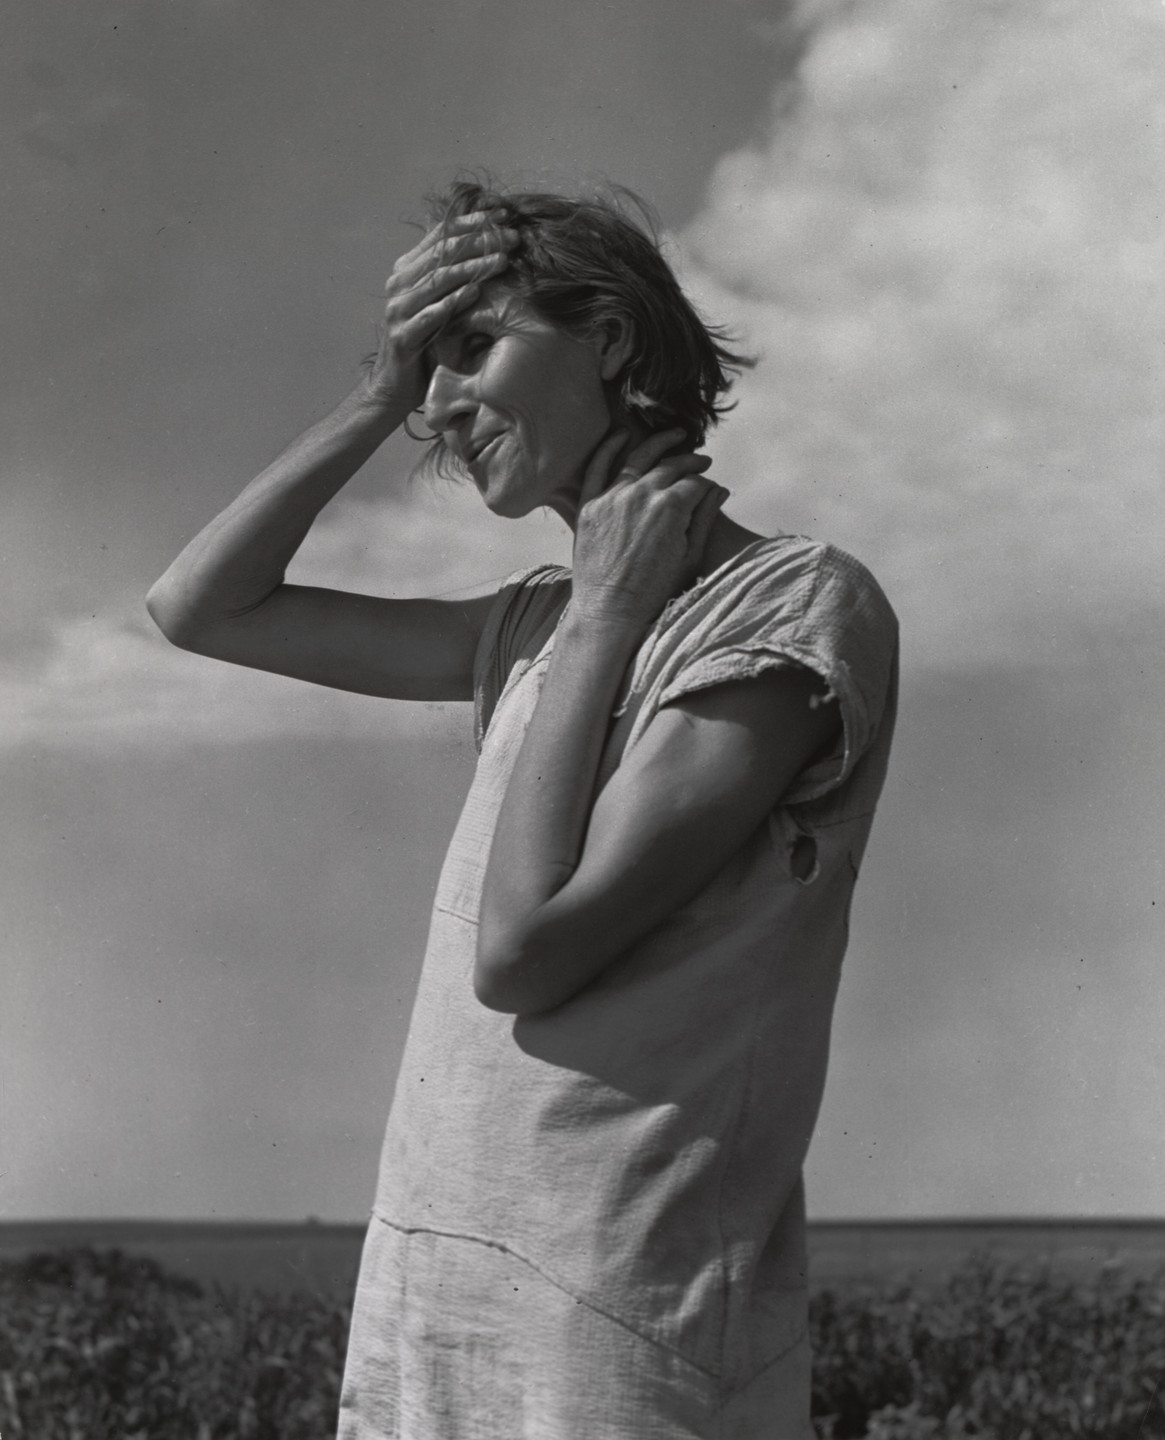 Dorothea Lange. Woman of the High Plains, Texas Panhandle. June 1938